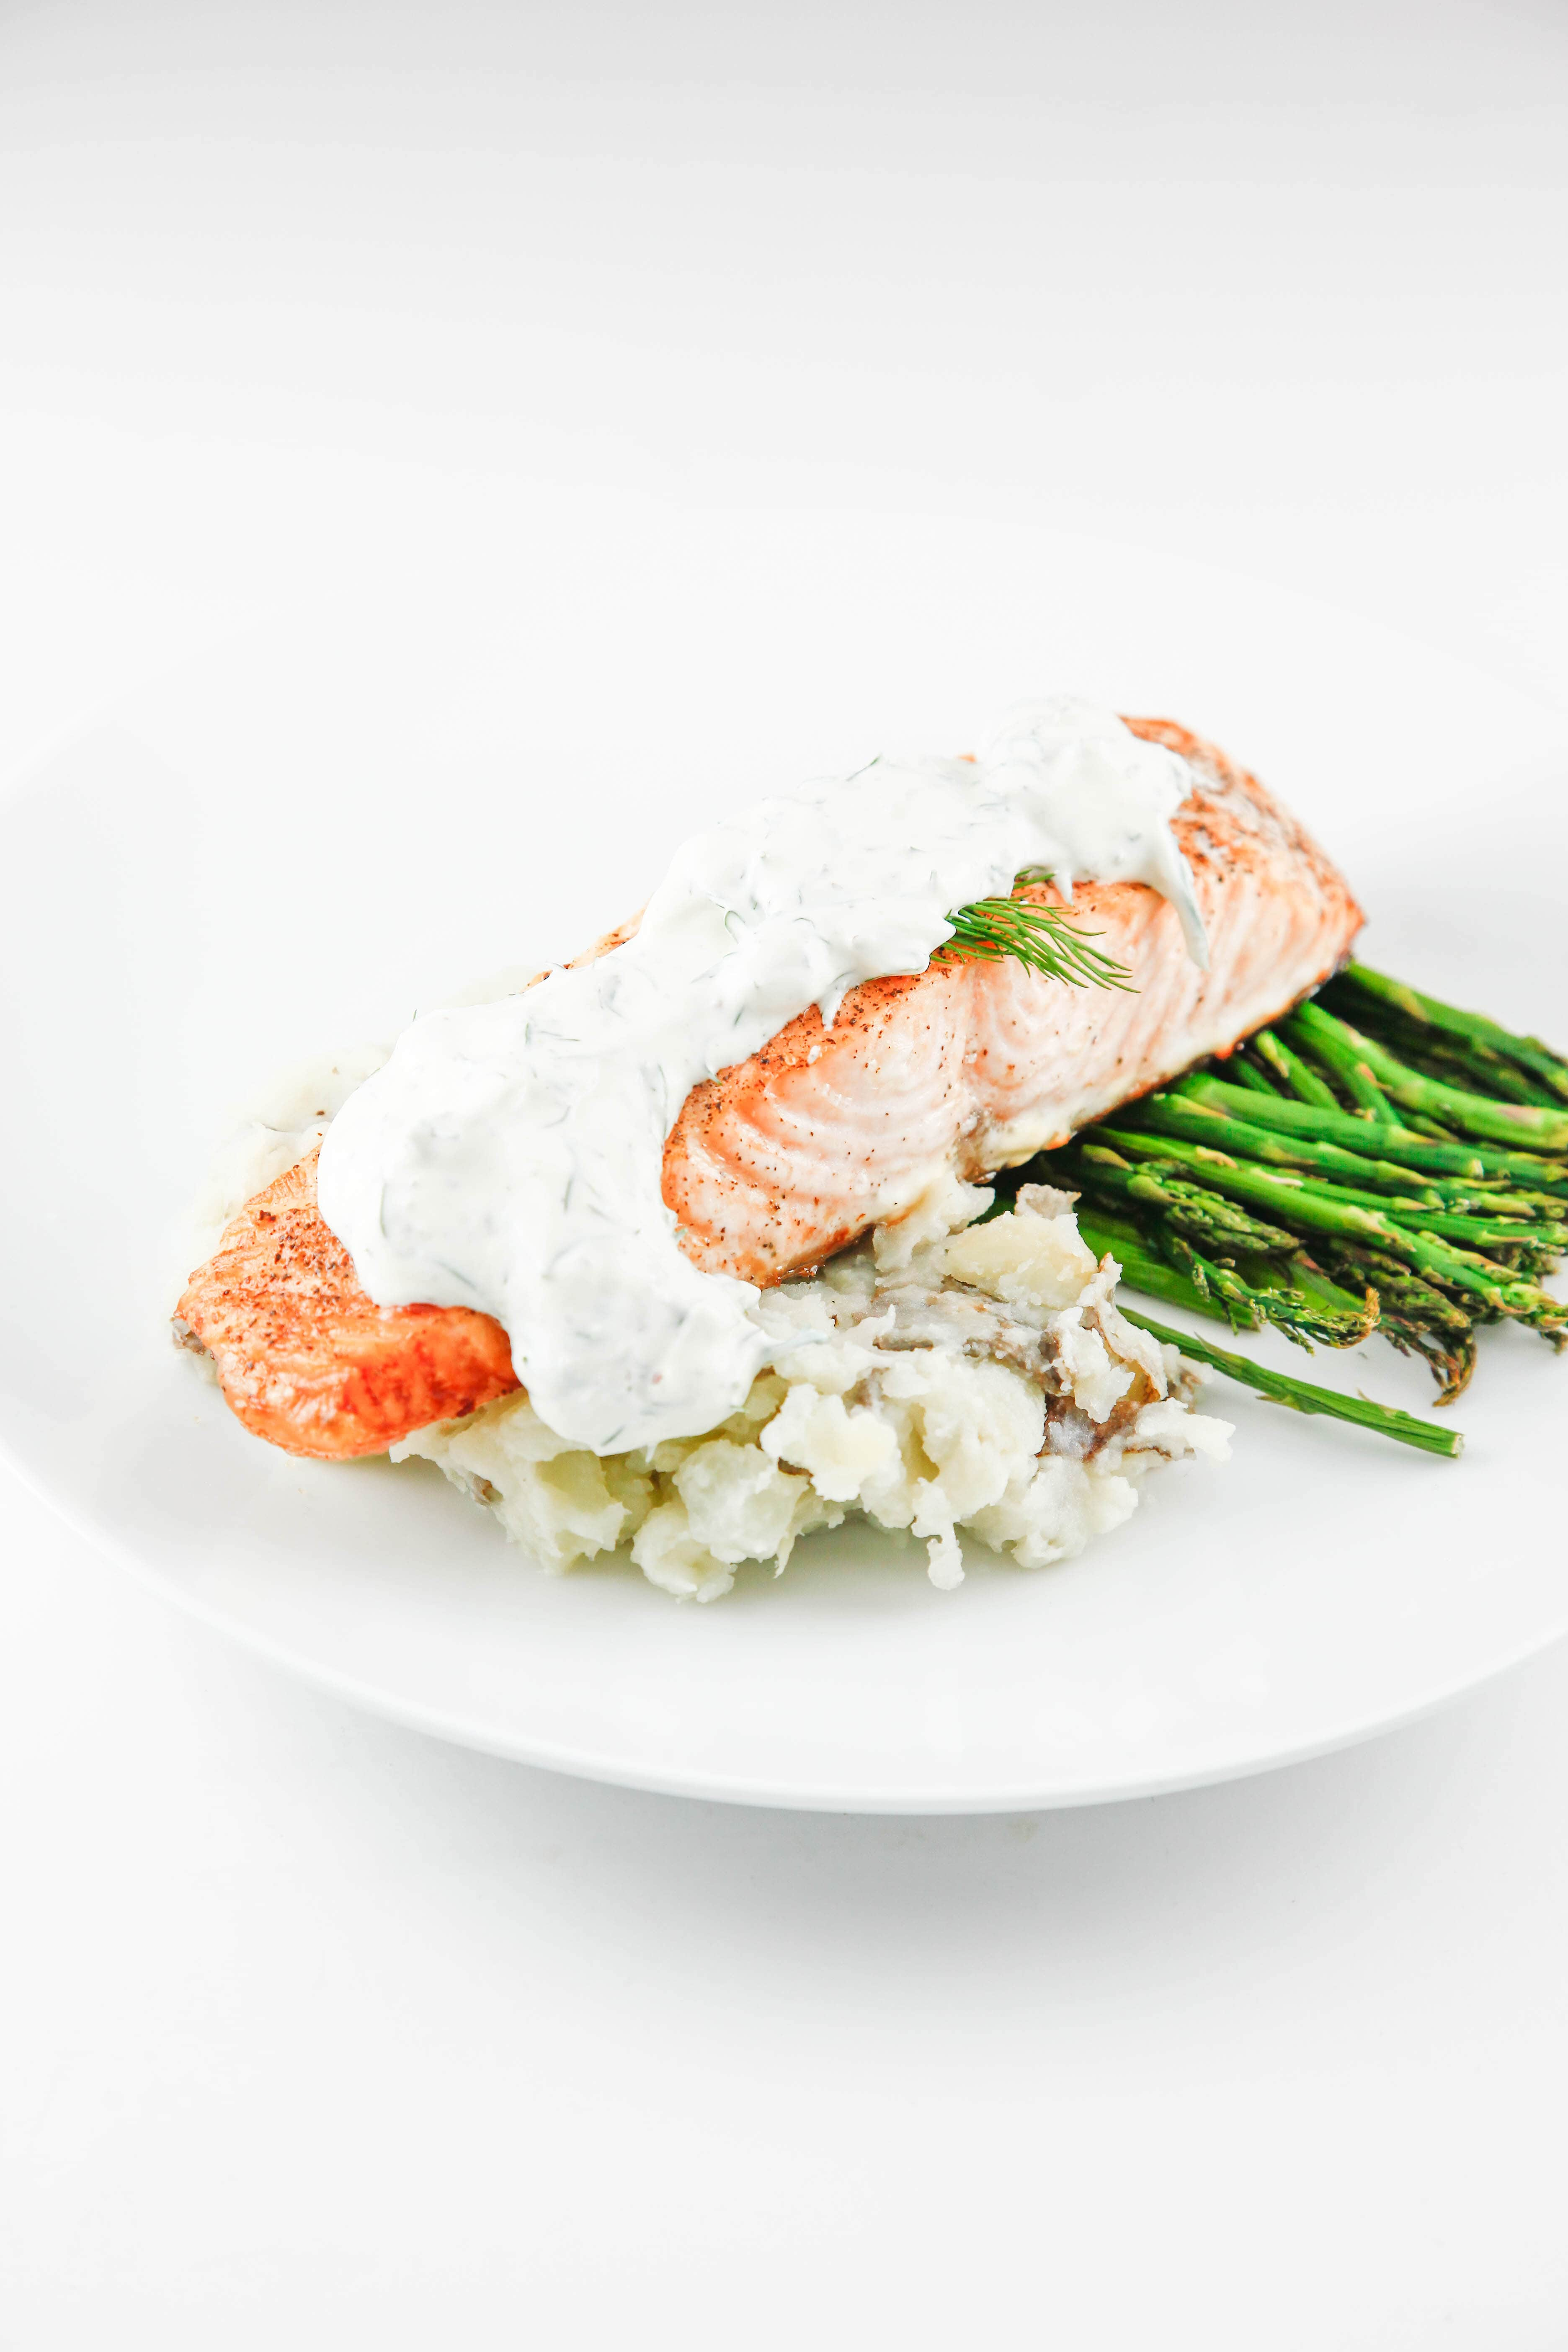 Roasted salmon with dill sauce the brooklyn cook for Dill sauce for fish